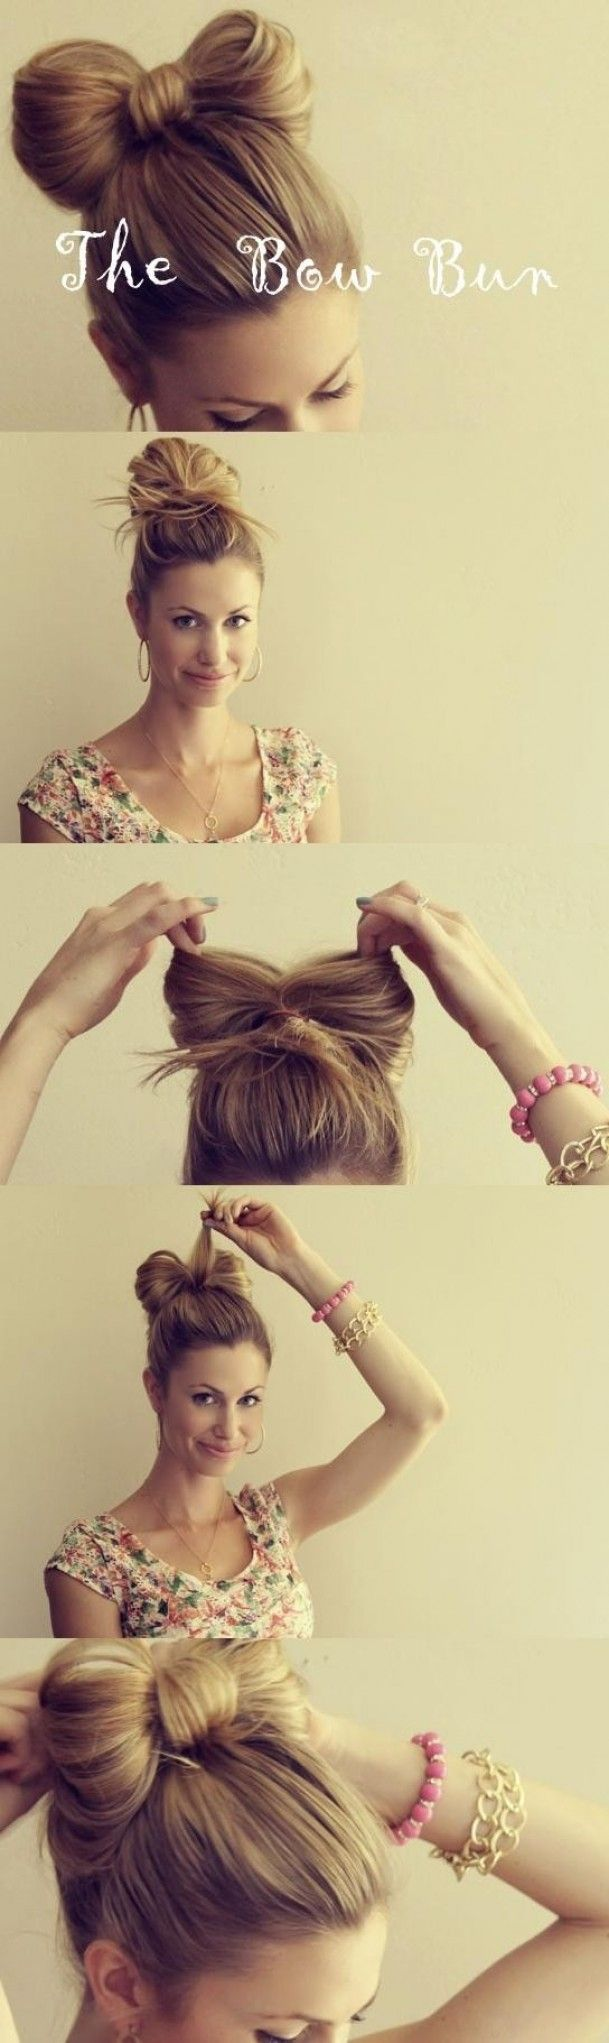 best hairstyles and colours images on pinterest cute